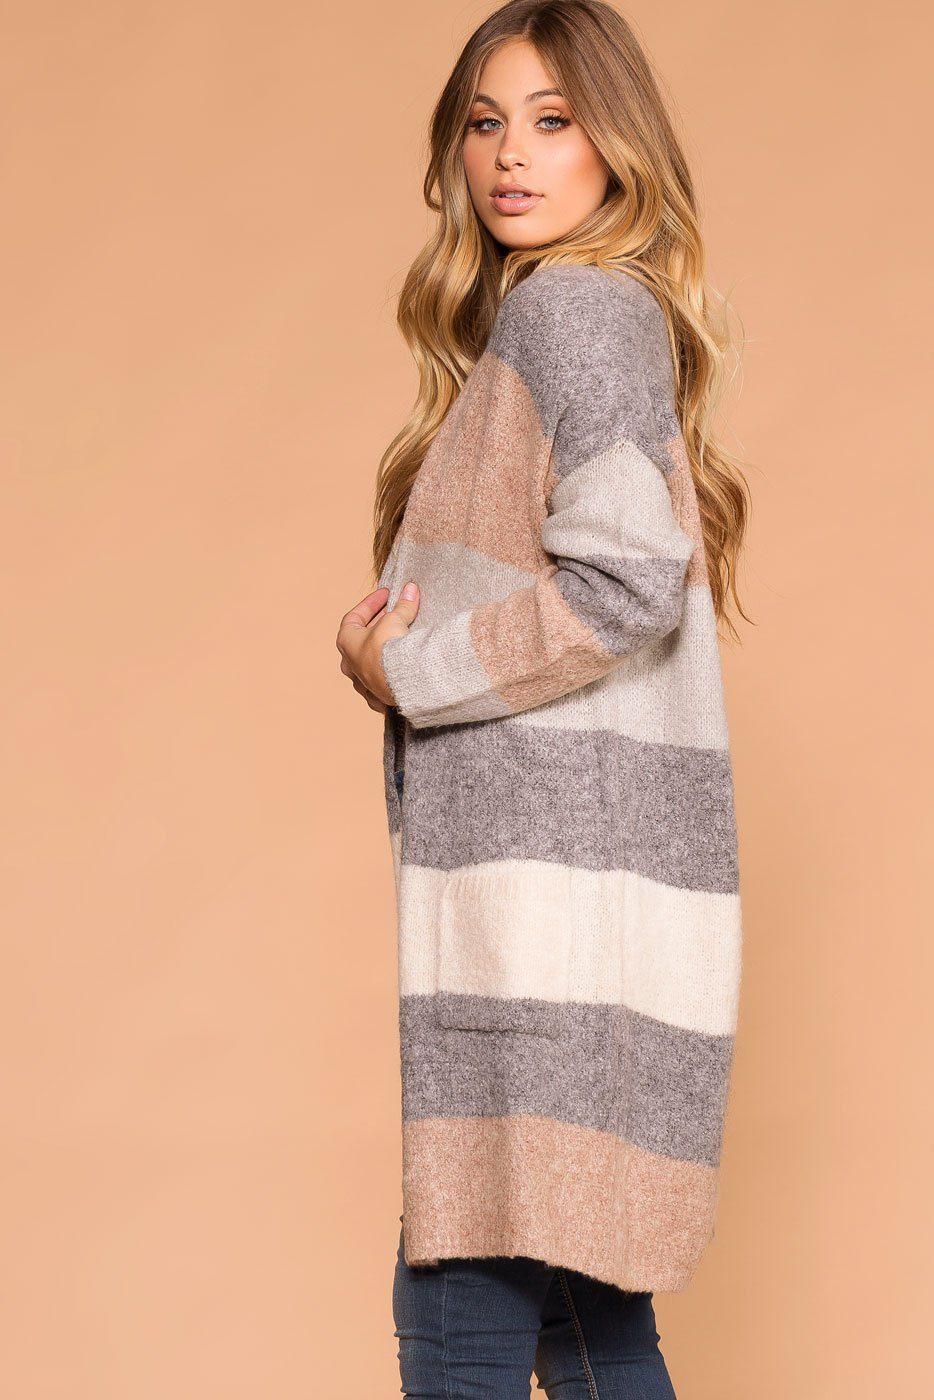 Priceless | Grey Ivory Taupe Knit Long Cardigan Sweater | Womens